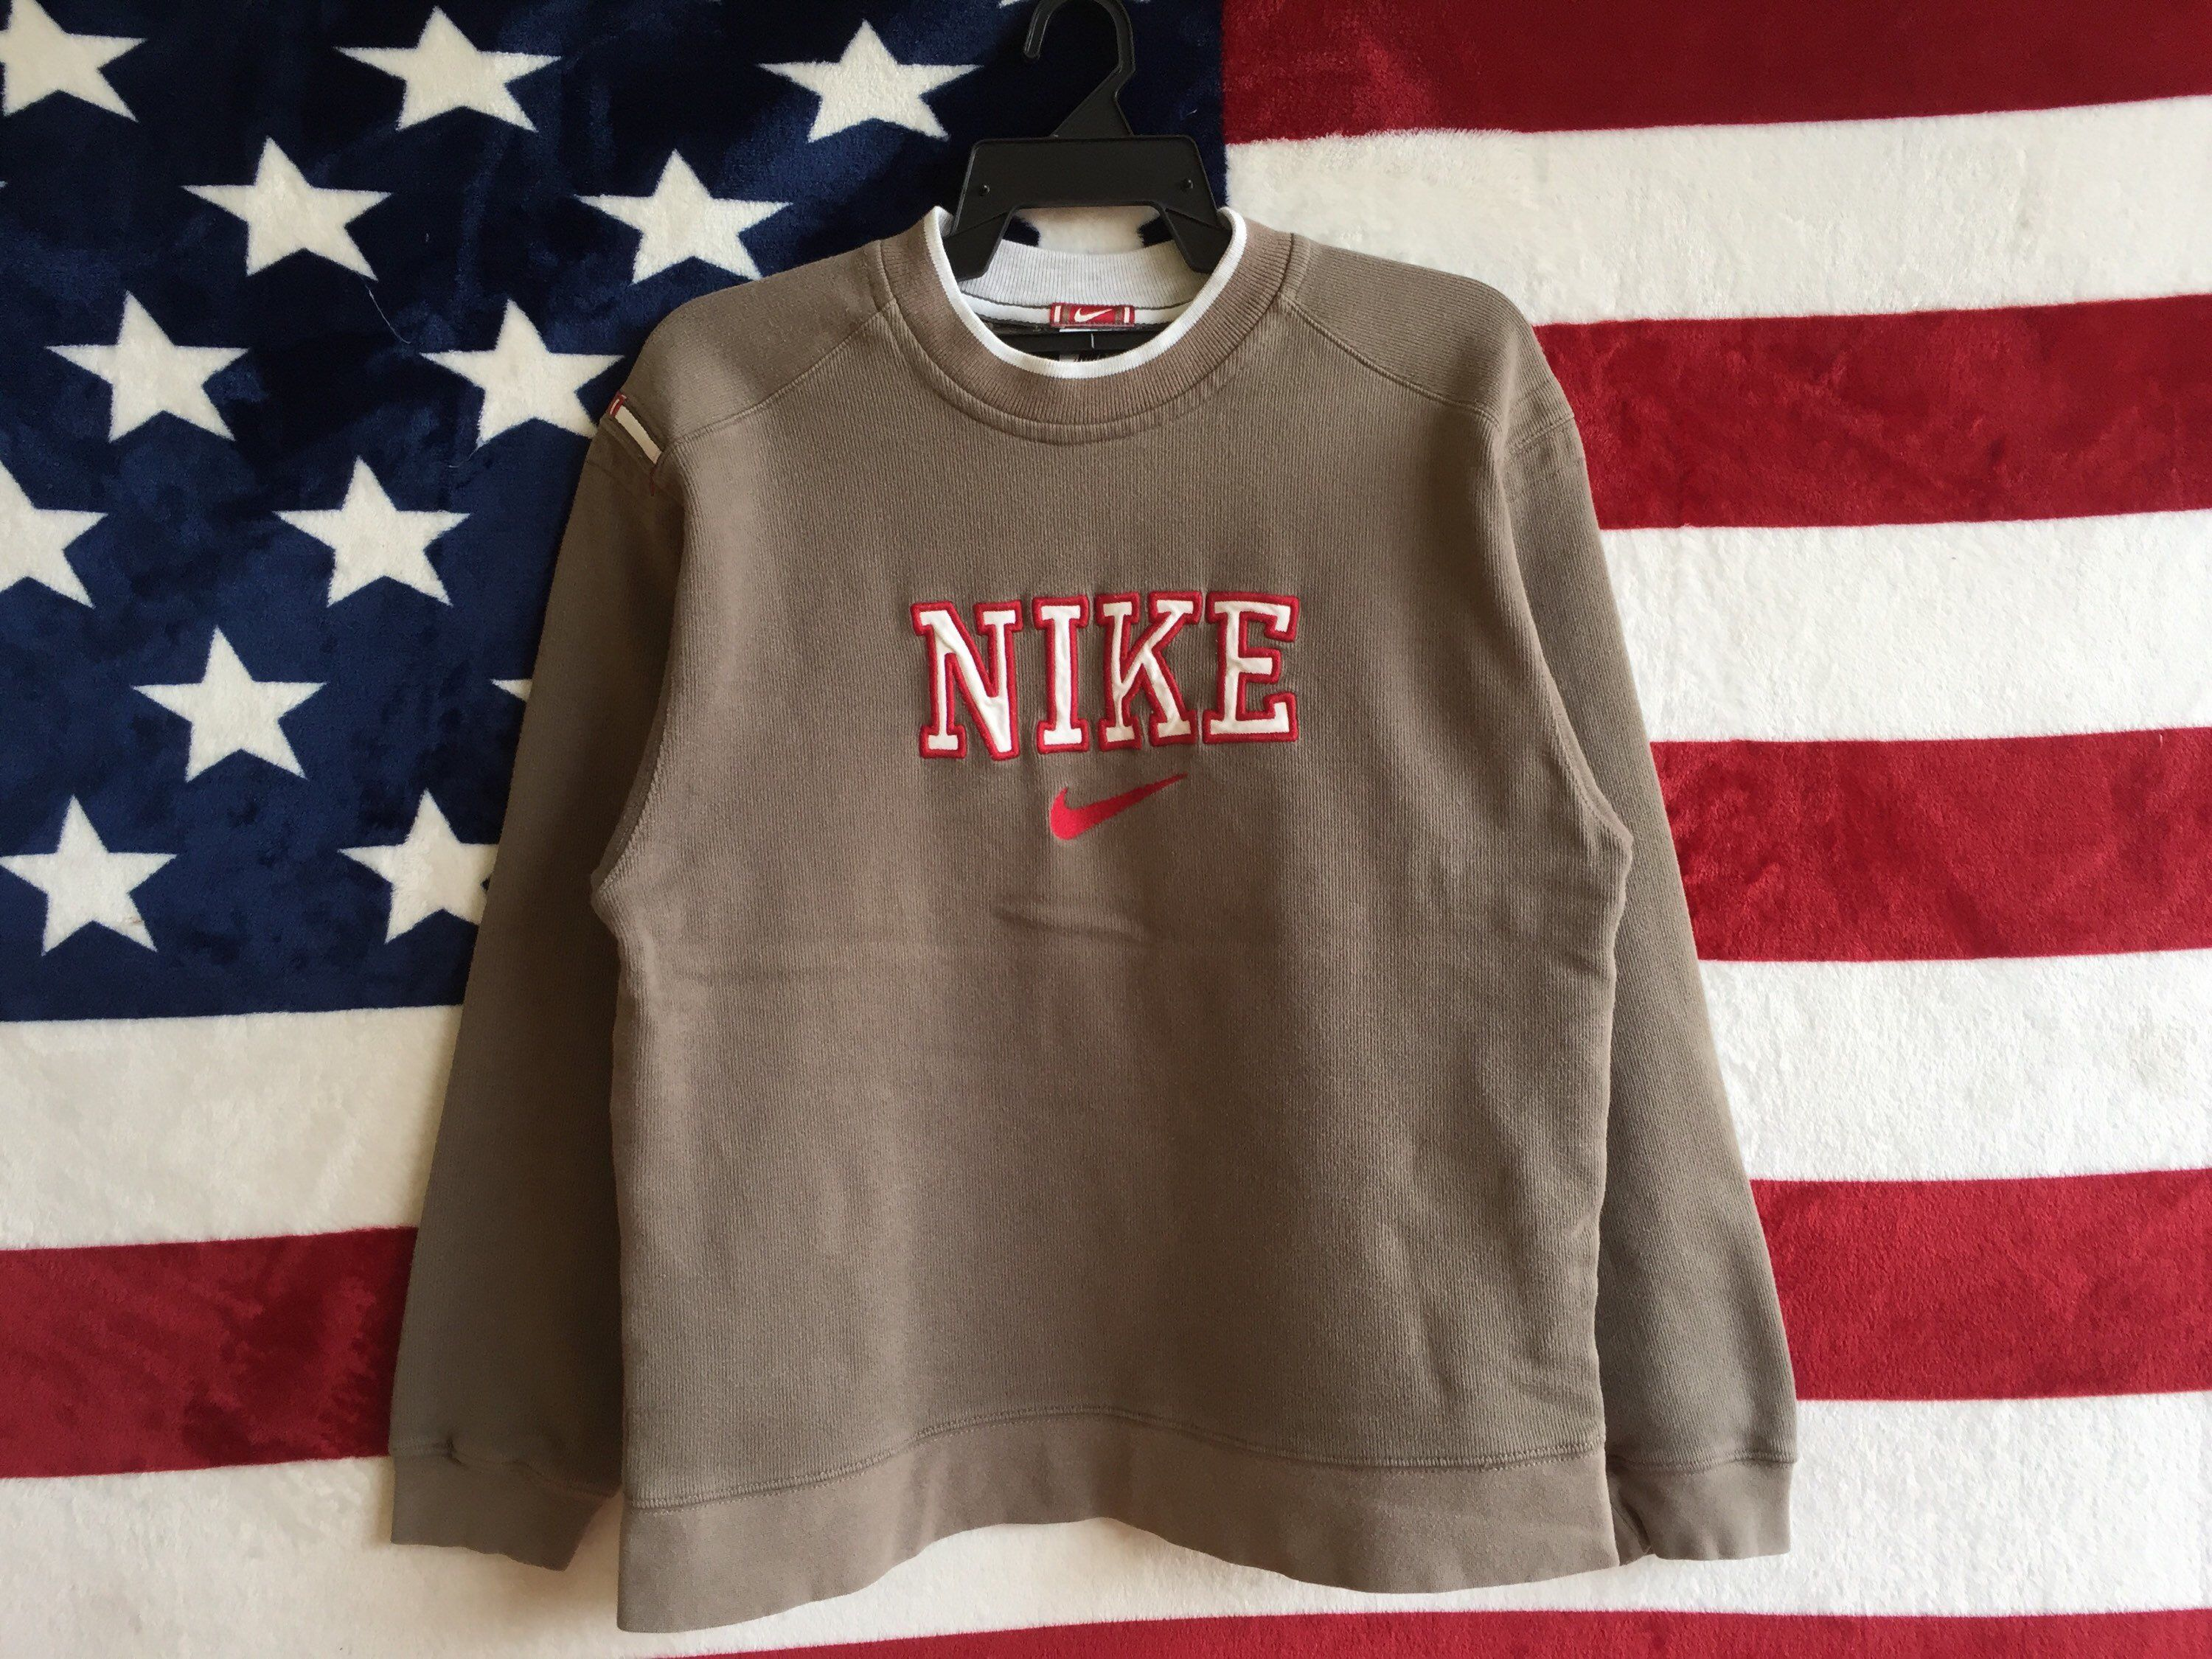 Excited To Share The Latest Addition To My Etsy Shop Vintage 90s Nike Swoosh Spell Out Sweatshirt Brown Colour Nike Swea Hoodies Men Nike Sweater Nike Shirts [ 2250 x 3000 Pixel ]